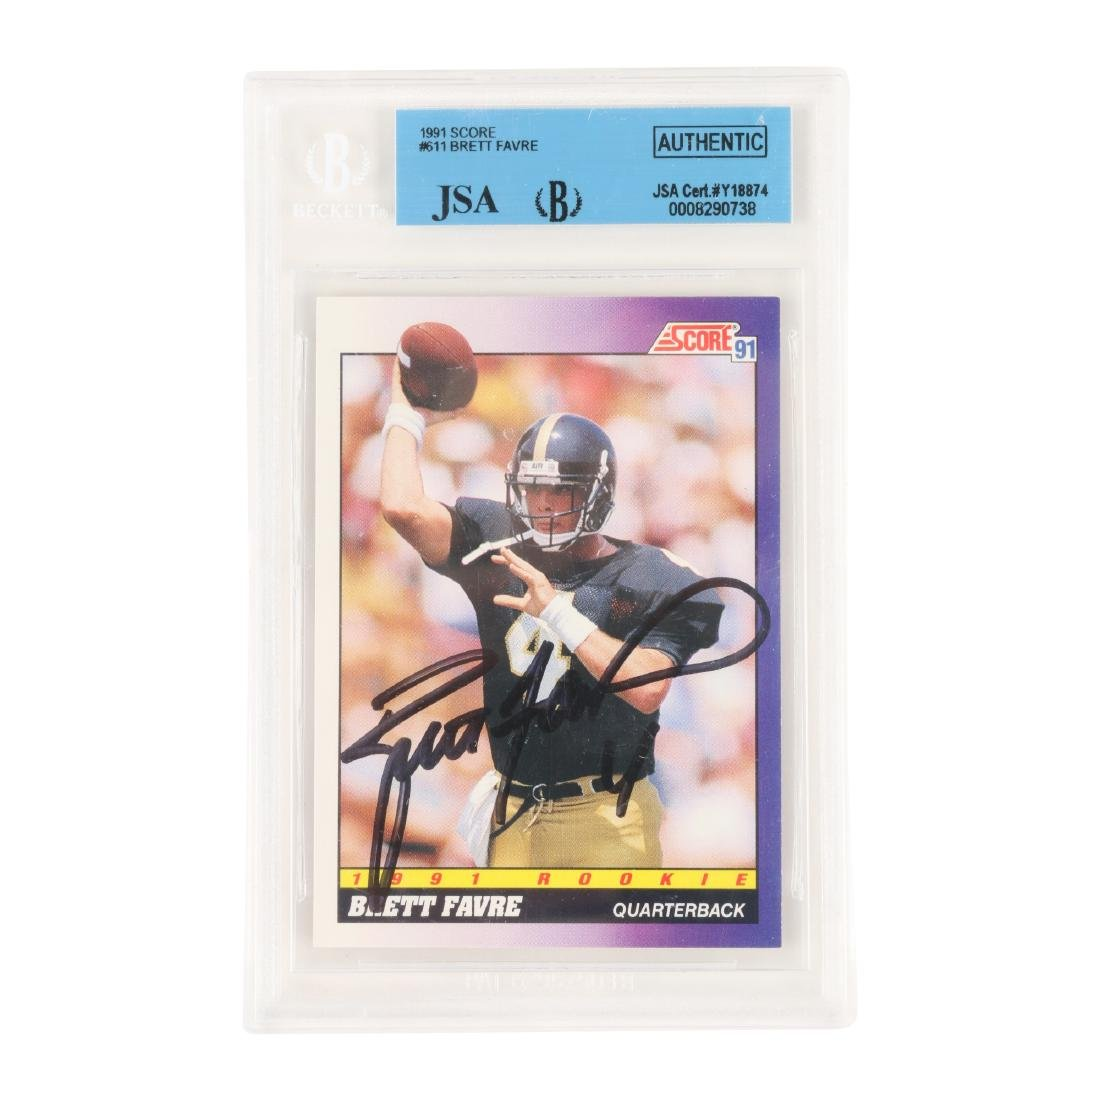 Brett Favre Signed Football Card